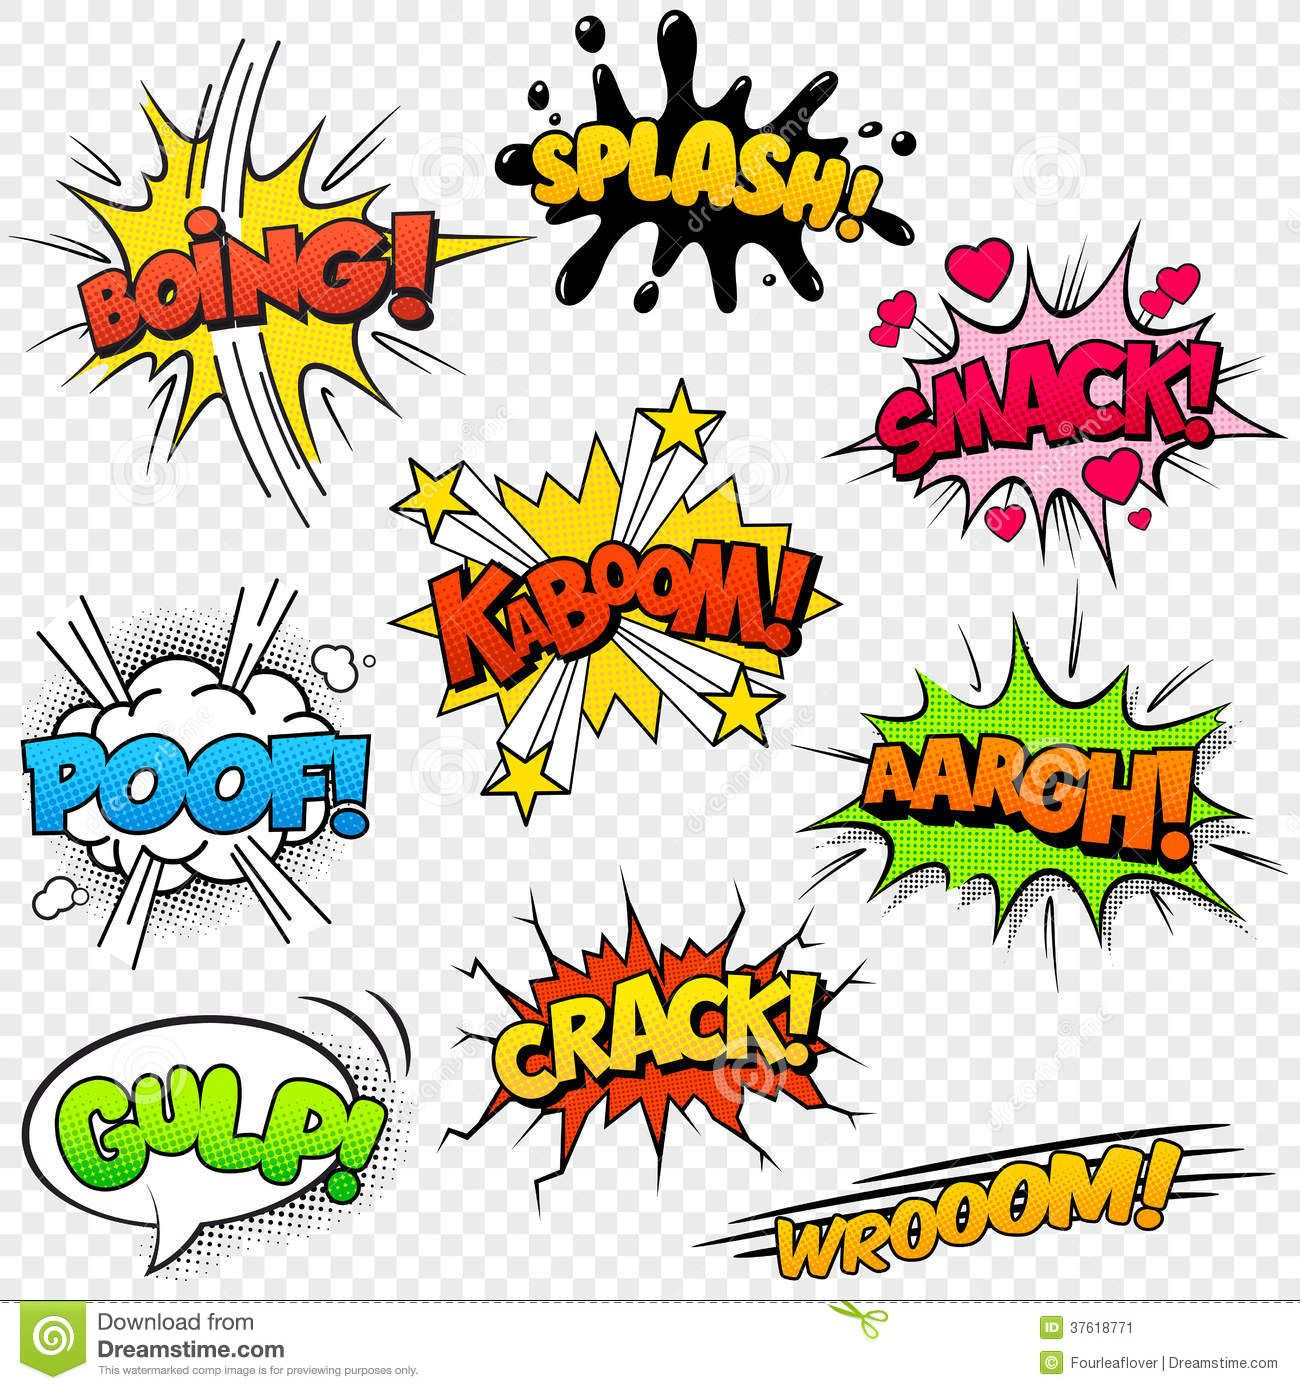 Comic book sounds clipart black and white for kids picture freeuse stock Comic Sound Effects - Download From Over 54 Million High Quality ... picture freeuse stock